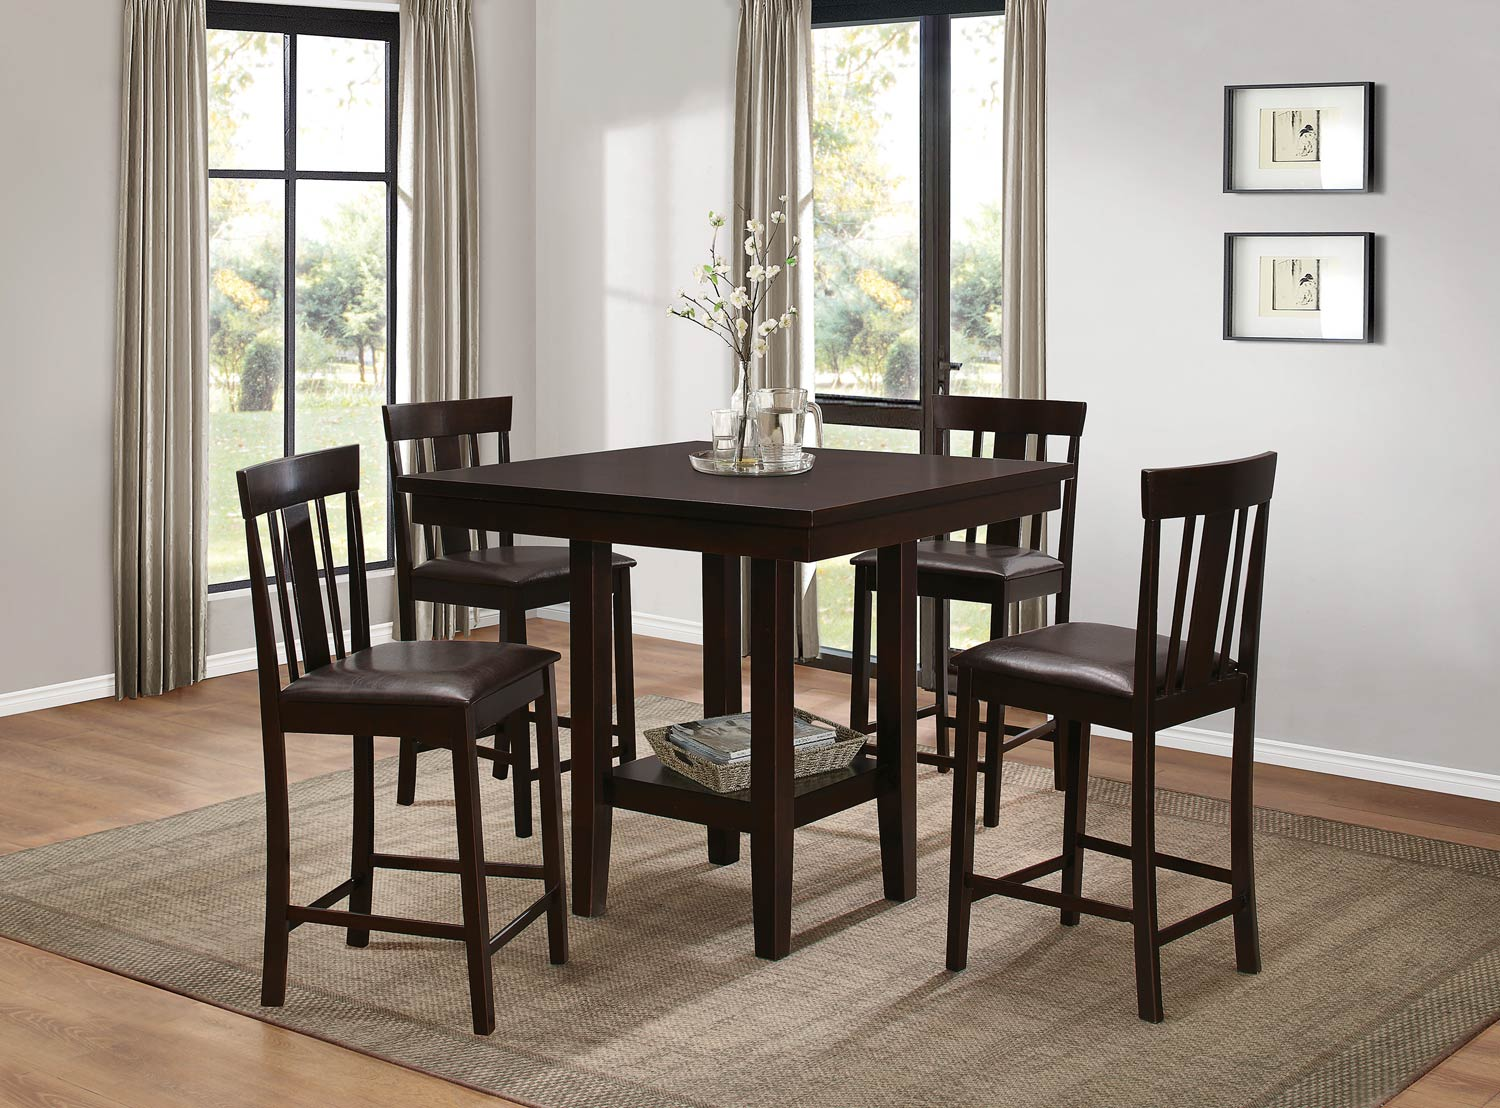 Homelegance Diego Counter Height Dining Set - Espresso